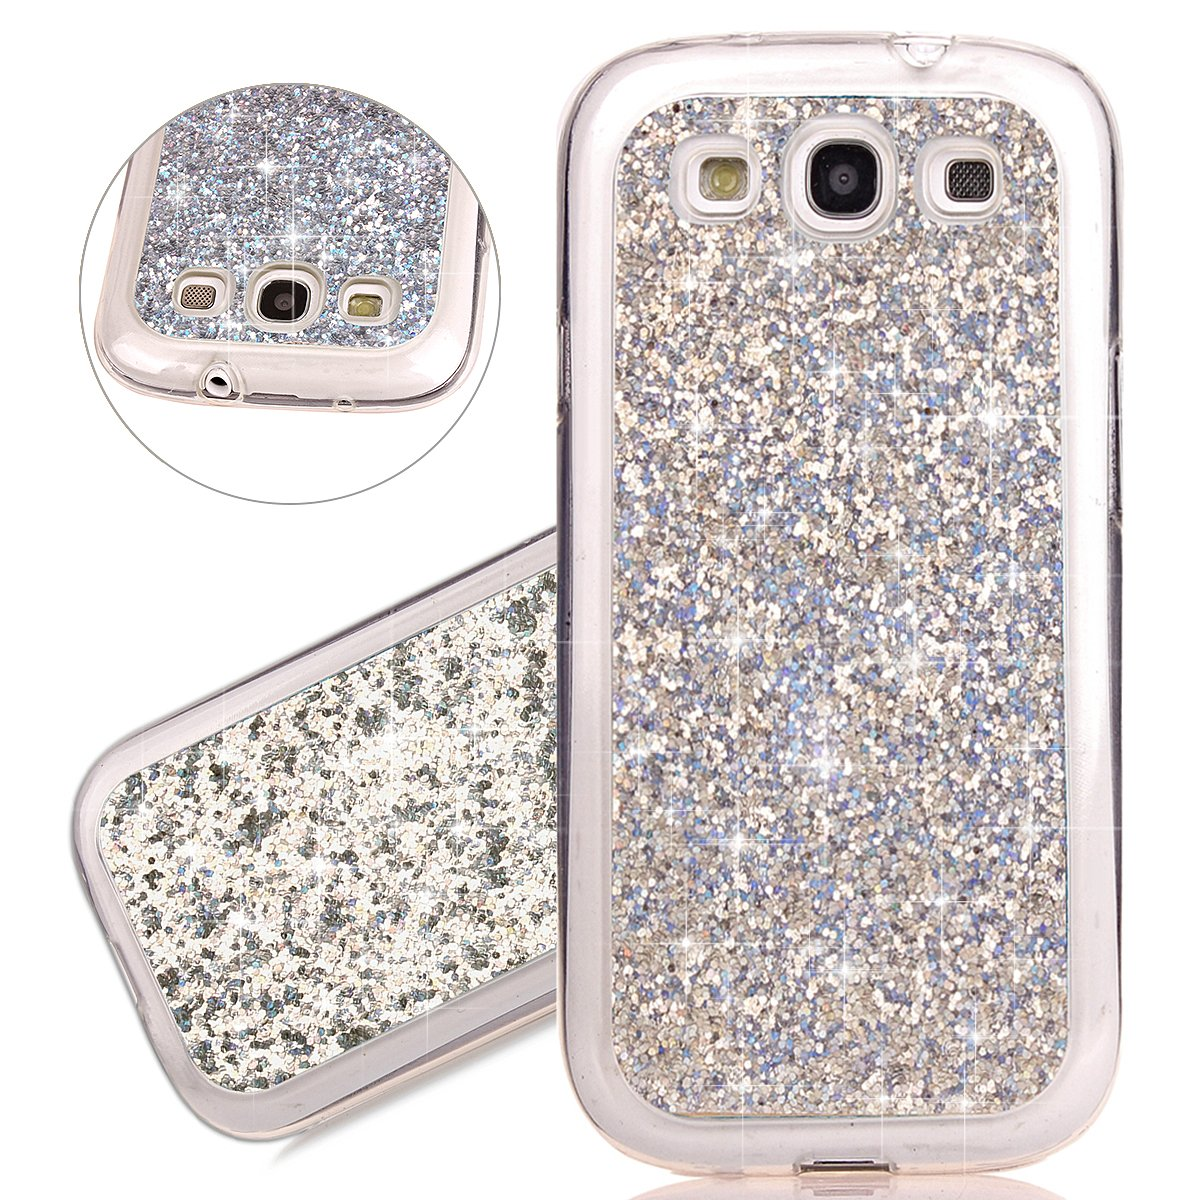 ISAKEN Custodia Galaxy S3 I9300, Glitter Bling Cover per Samsung Galaxy S3 - [TPU Shock-Absorption] Elegant Morbido Silicone Protettiva TPU Bumper Custodia Brillante,Ultra Sottile Gel Cassa Custodia Caso - Argento FASNO023279